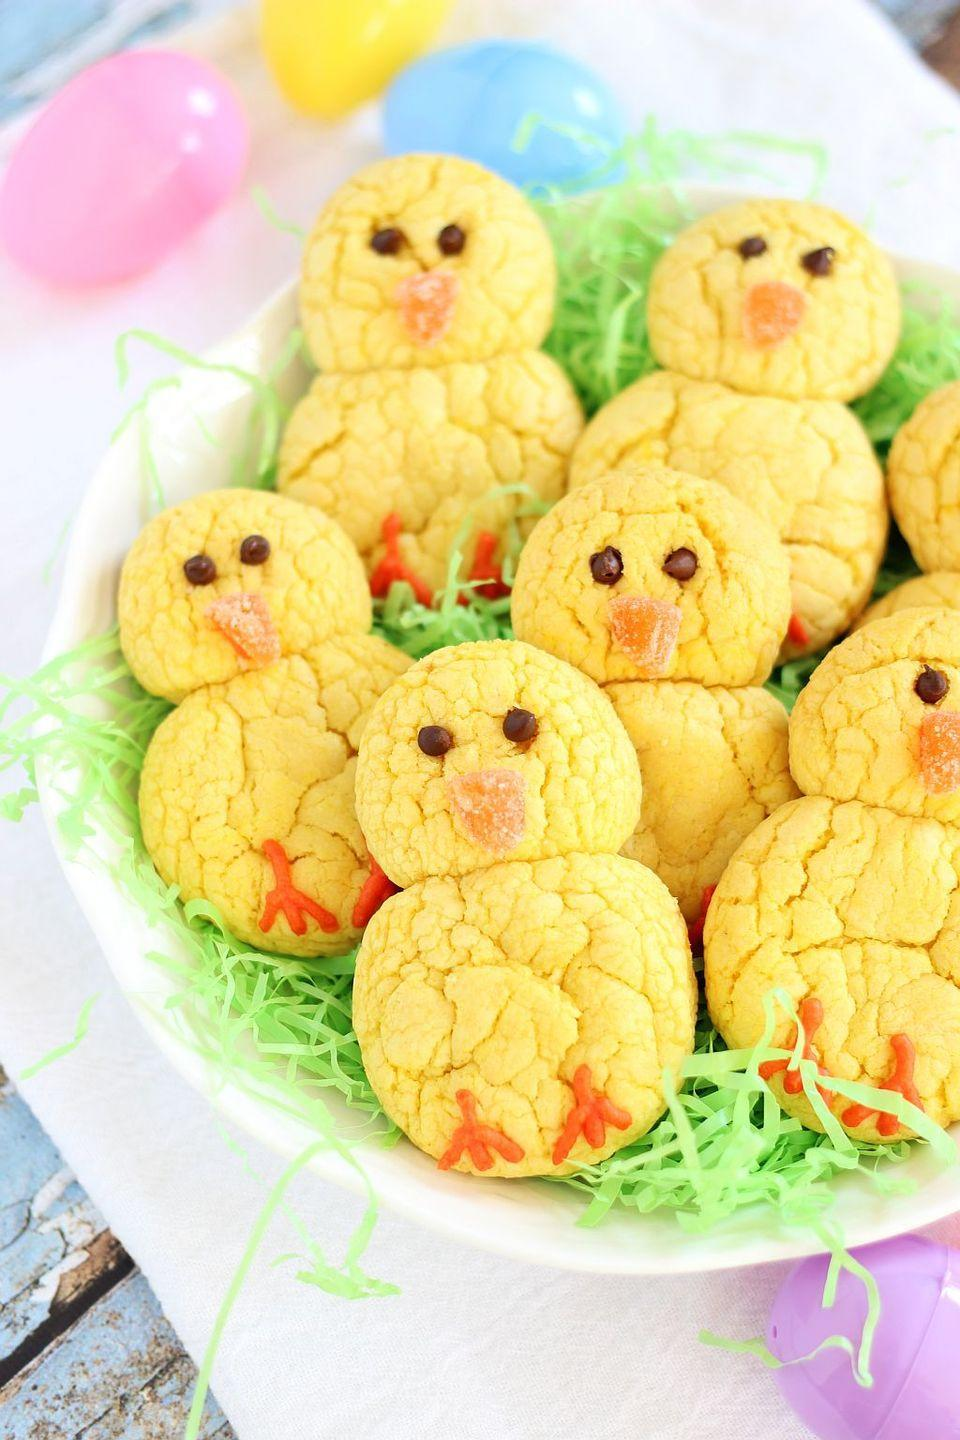 """<p>No one has to know that these little yellow chicks actually came from a <a href=""""https://www.goodhousekeeping.com/food-products/g29413624/best-box-cake-mixes/"""" rel=""""nofollow noopener"""" target=""""_blank"""" data-ylk=""""slk:cake mix"""" class=""""link rapid-noclick-resp"""">cake mix</a>. </p><p><a href=""""https://thegoldlininggirl.com/2015/03/easter-chicks-lemon-cookies/"""" rel=""""nofollow noopener"""" target=""""_blank"""" data-ylk=""""slk:Get the recipe from The Gold Lining Girl »"""" class=""""link rapid-noclick-resp""""><em>Get the recipe from The Gold Lining Girl »</em></a></p>"""